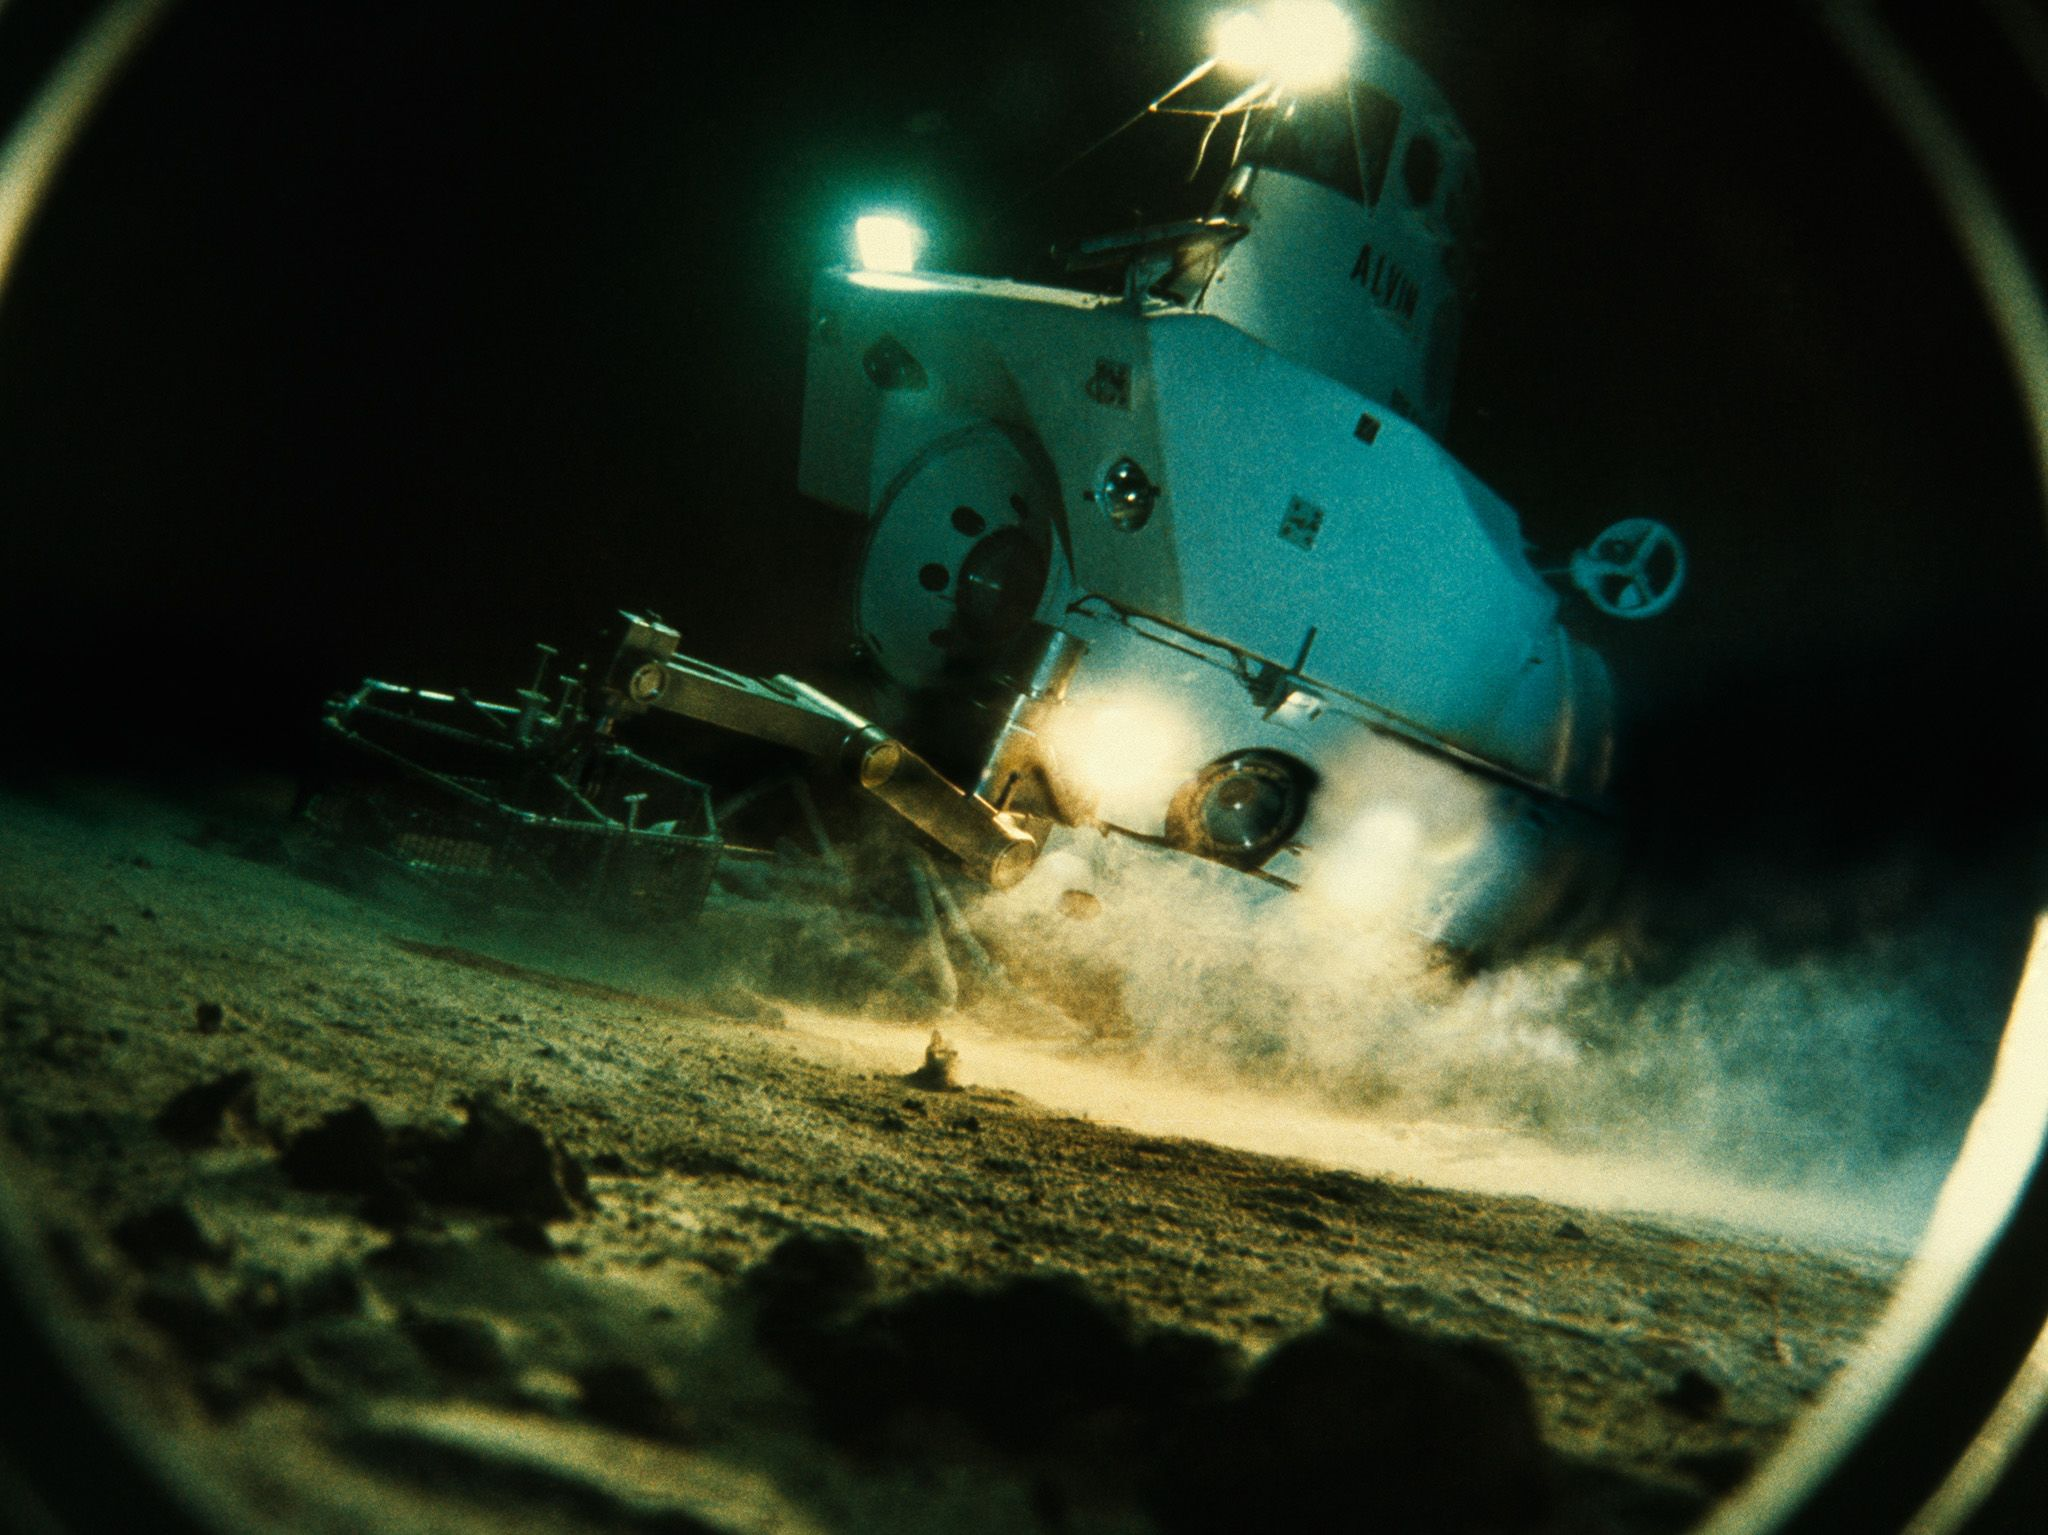 View through a porthole of the submersible Alvin exploring sea floor. This is part of Bob... [Photo of the day - June 2021]